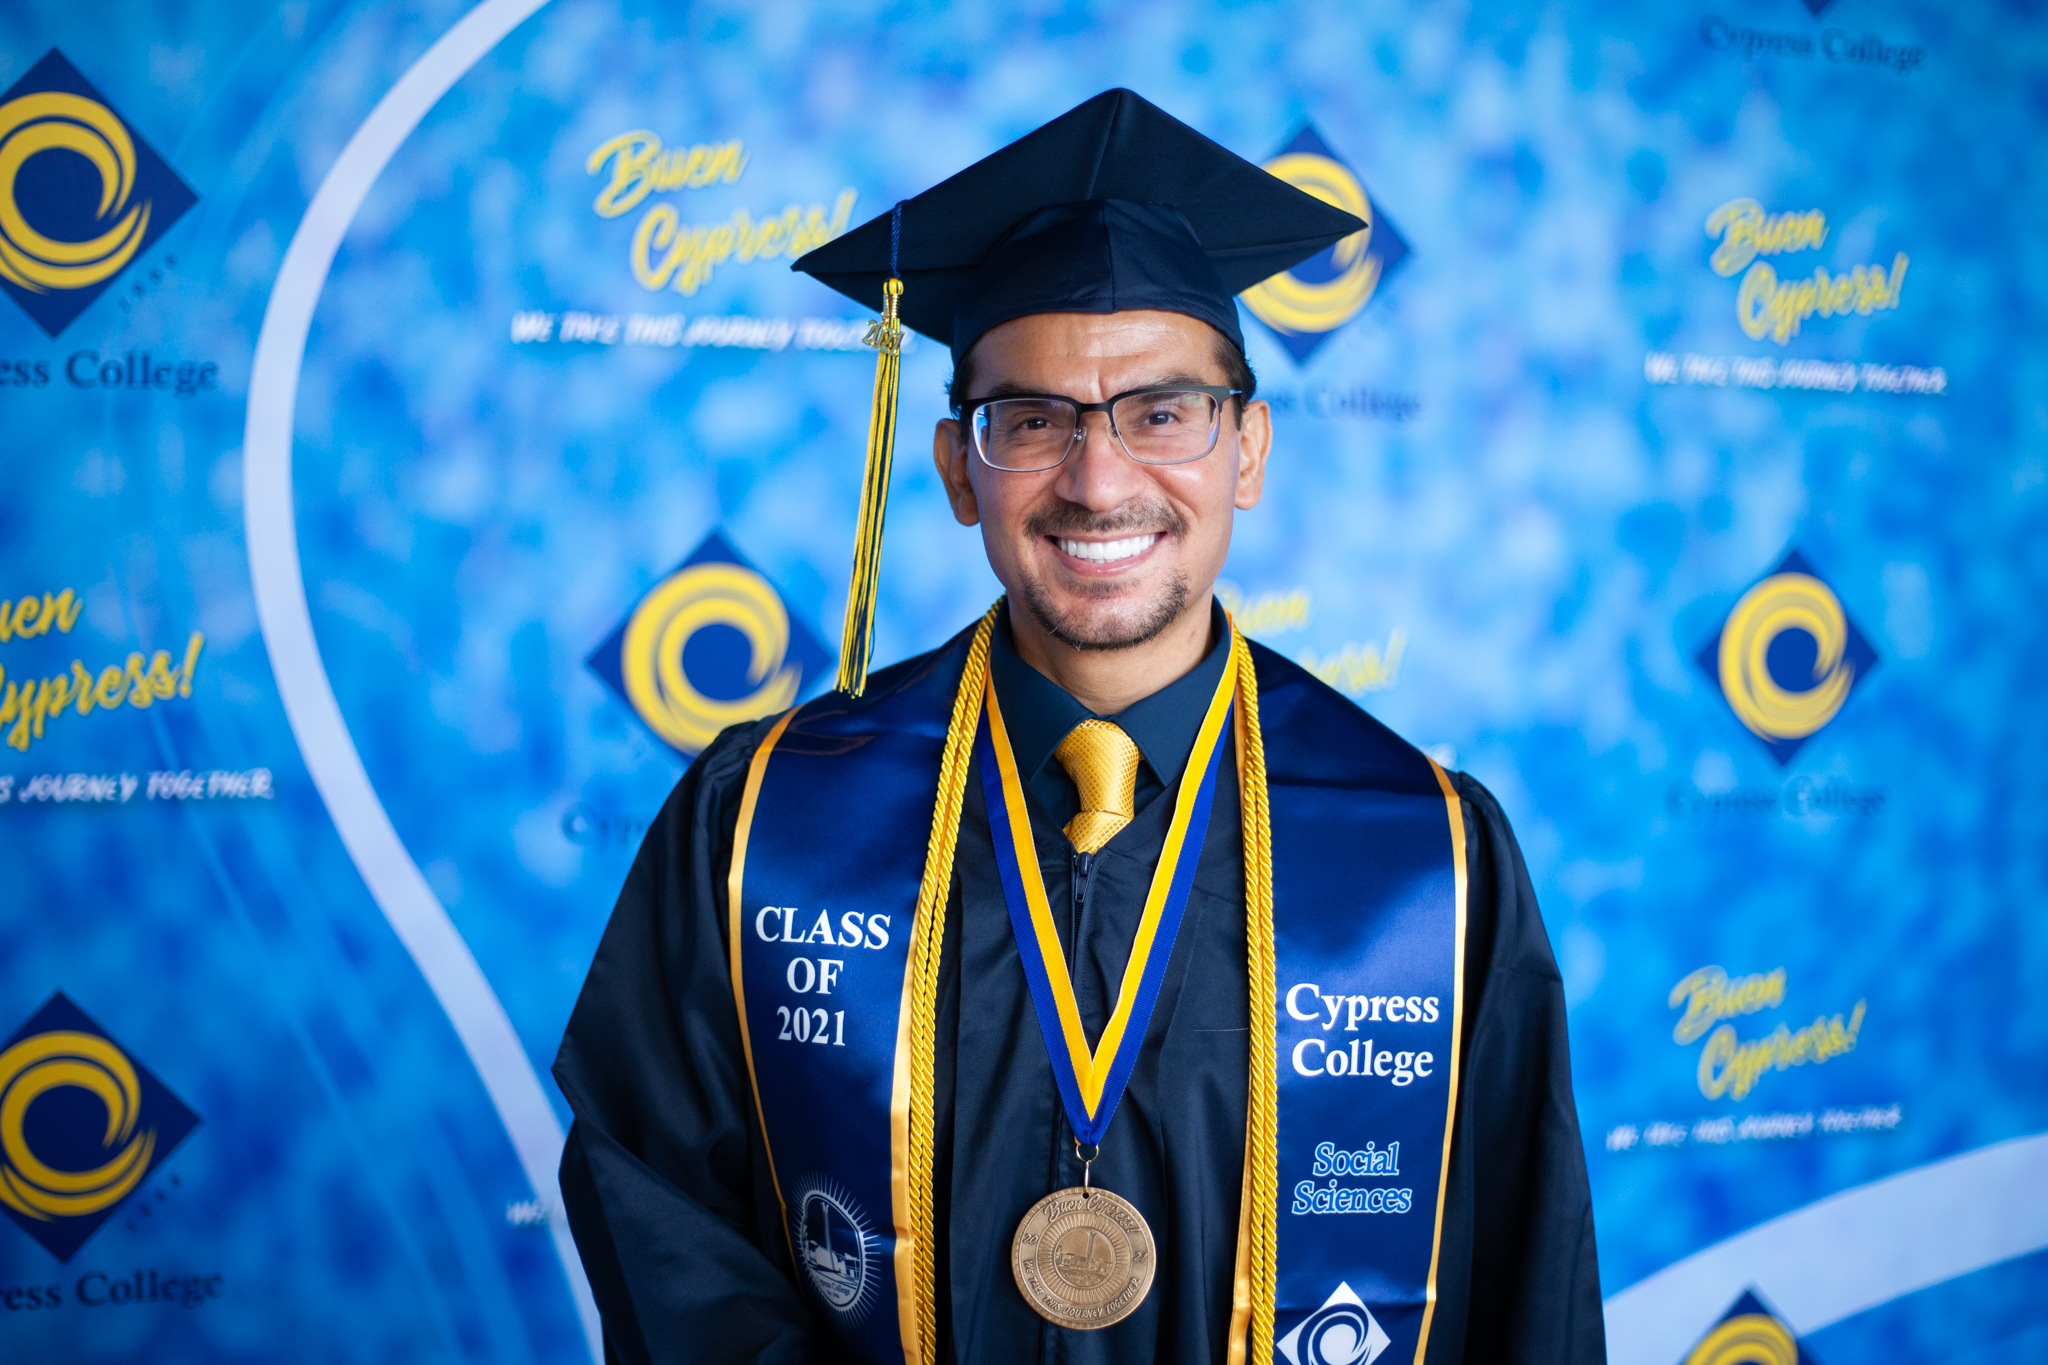 Social Sciences student Wilfredo Carrasco poses in front of blue background.